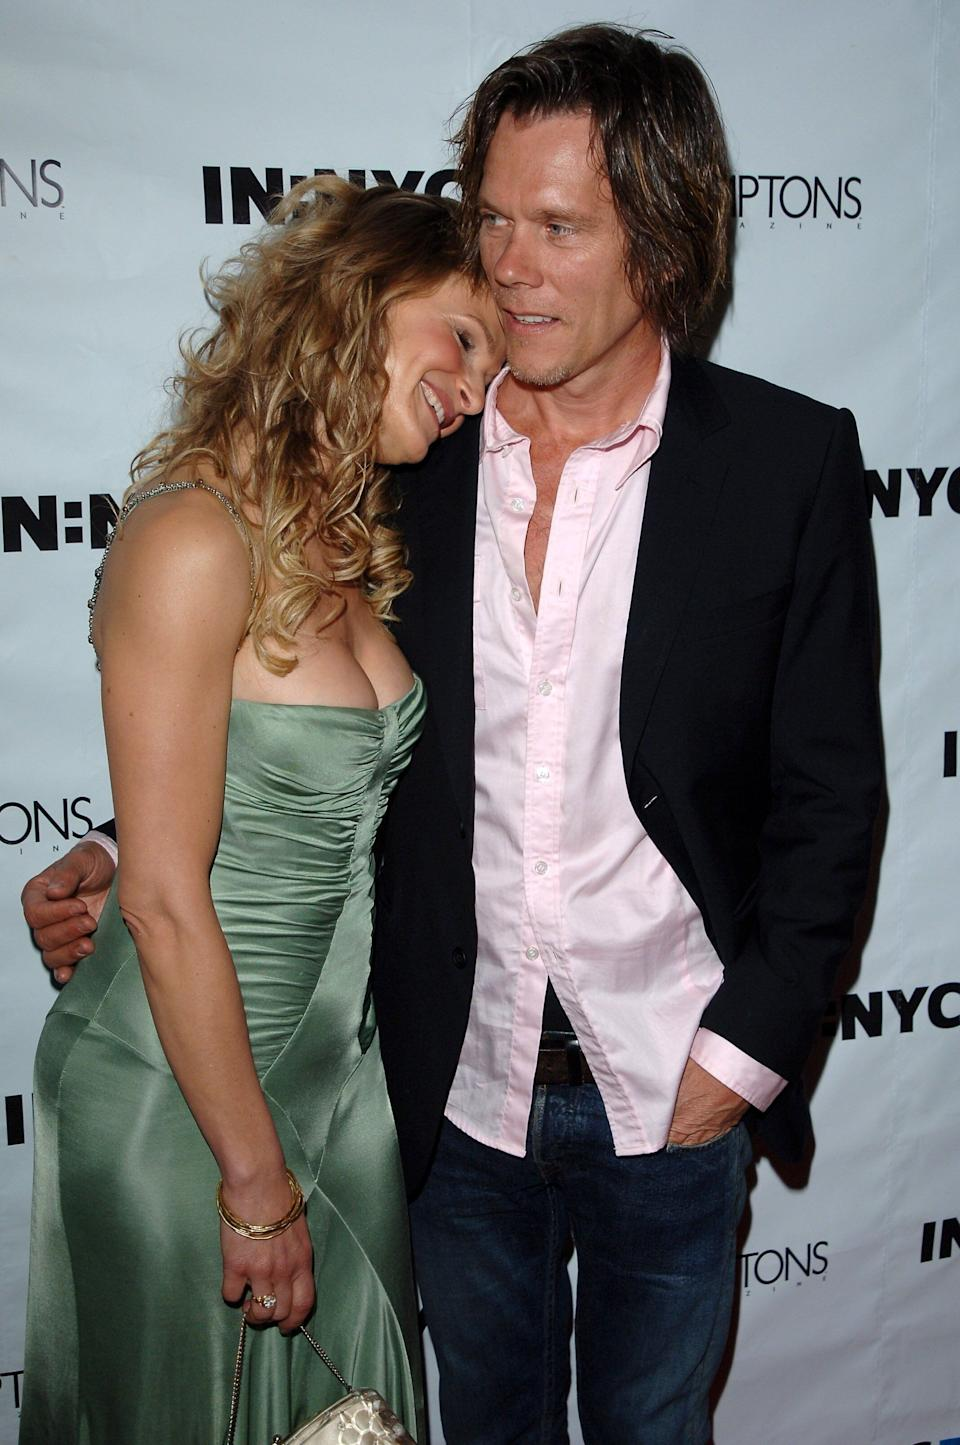 Bacon and Sedgwick arrive at the Hamptons Magazine party held at the Bridgehampton Tennis Club in New York.